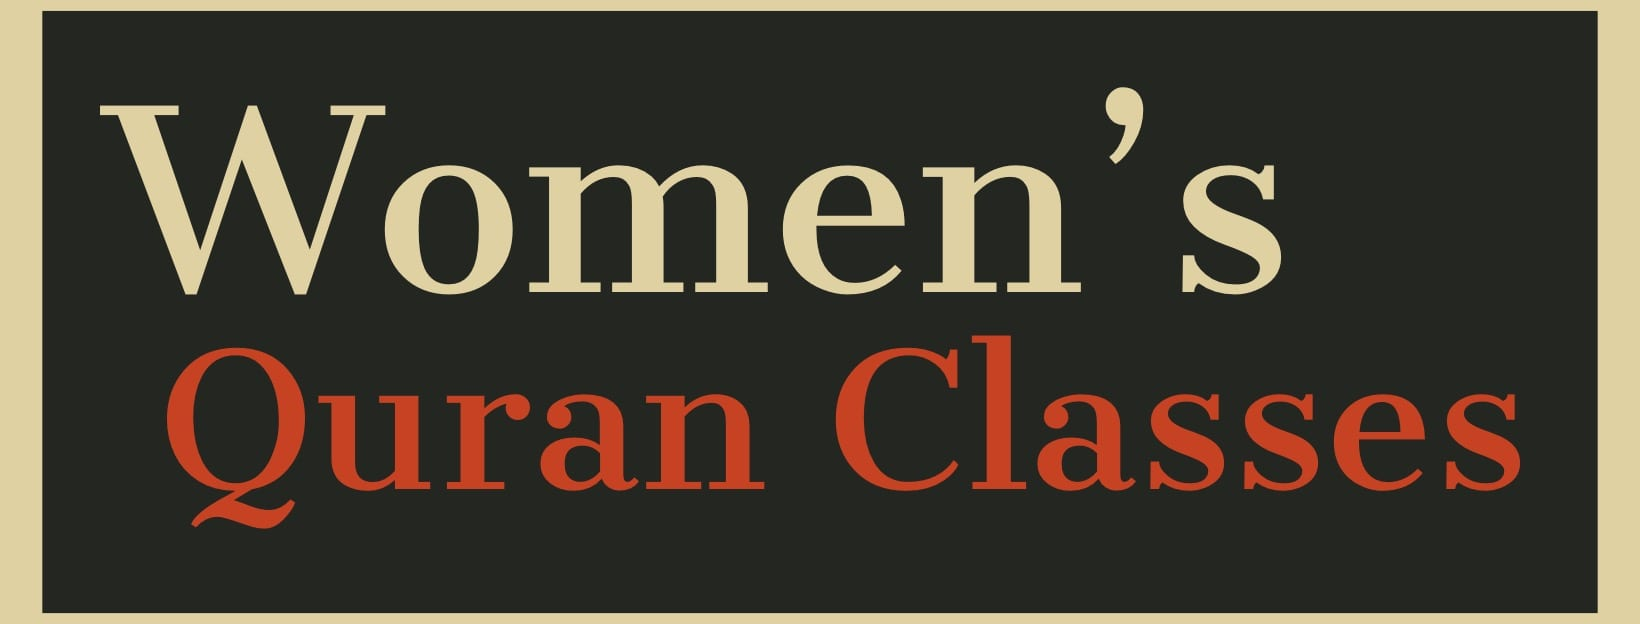 Women's Qur'aan Classes